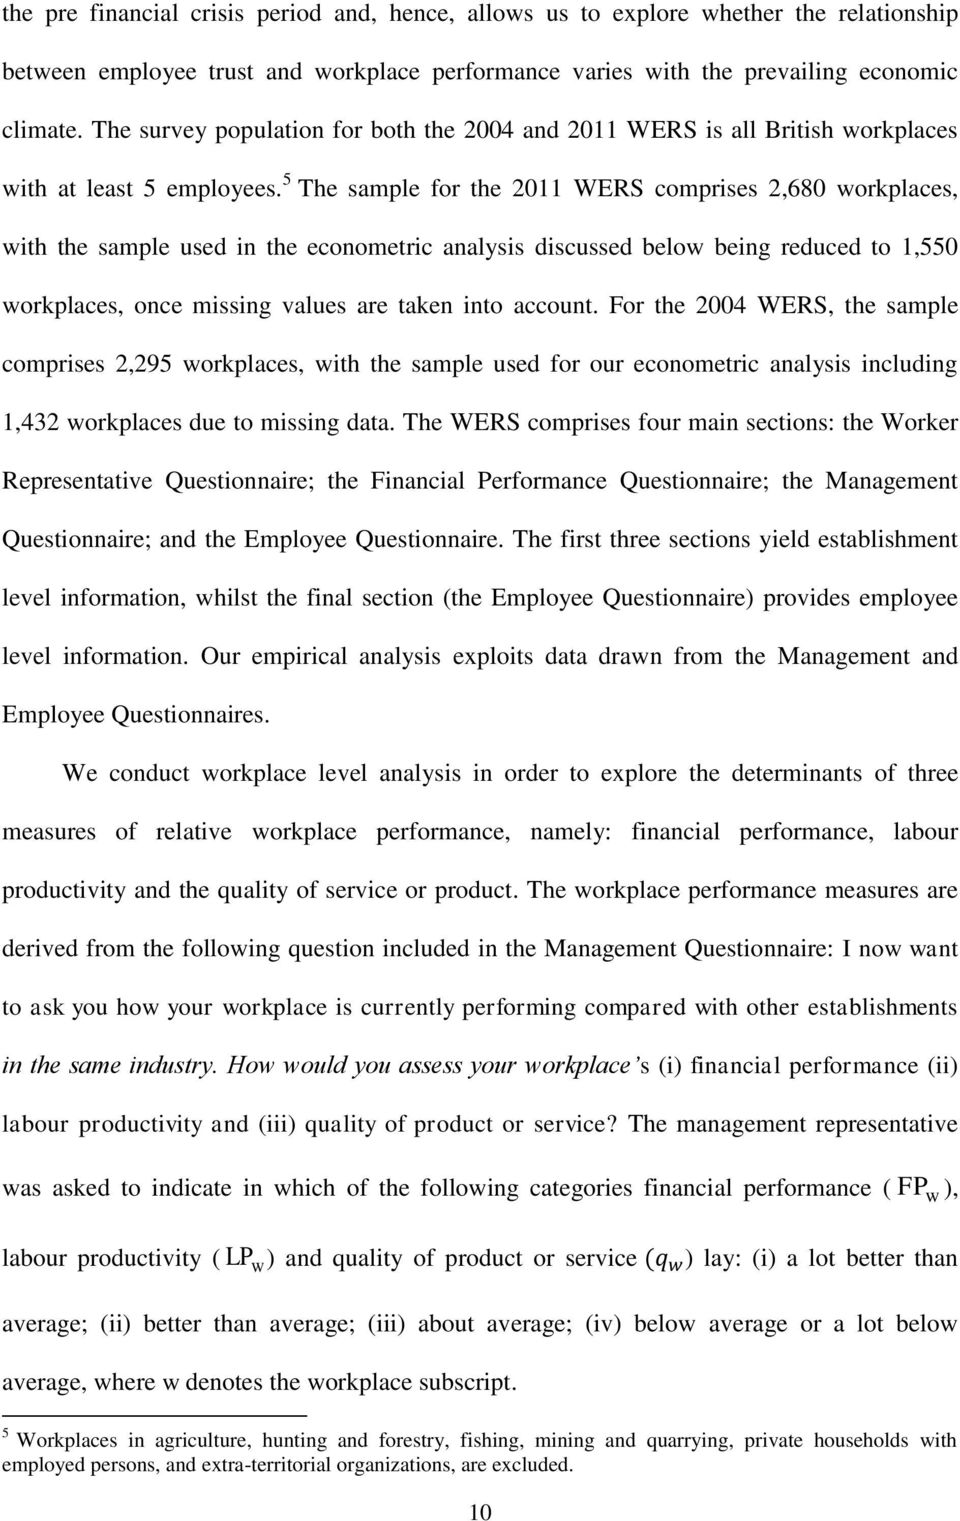 5 The sample for the 2011 WERS comprises 2,680 workplaces, with the sample used in the econometric analysis discussed below being reduced to 1,550 workplaces, once missing values are taken into